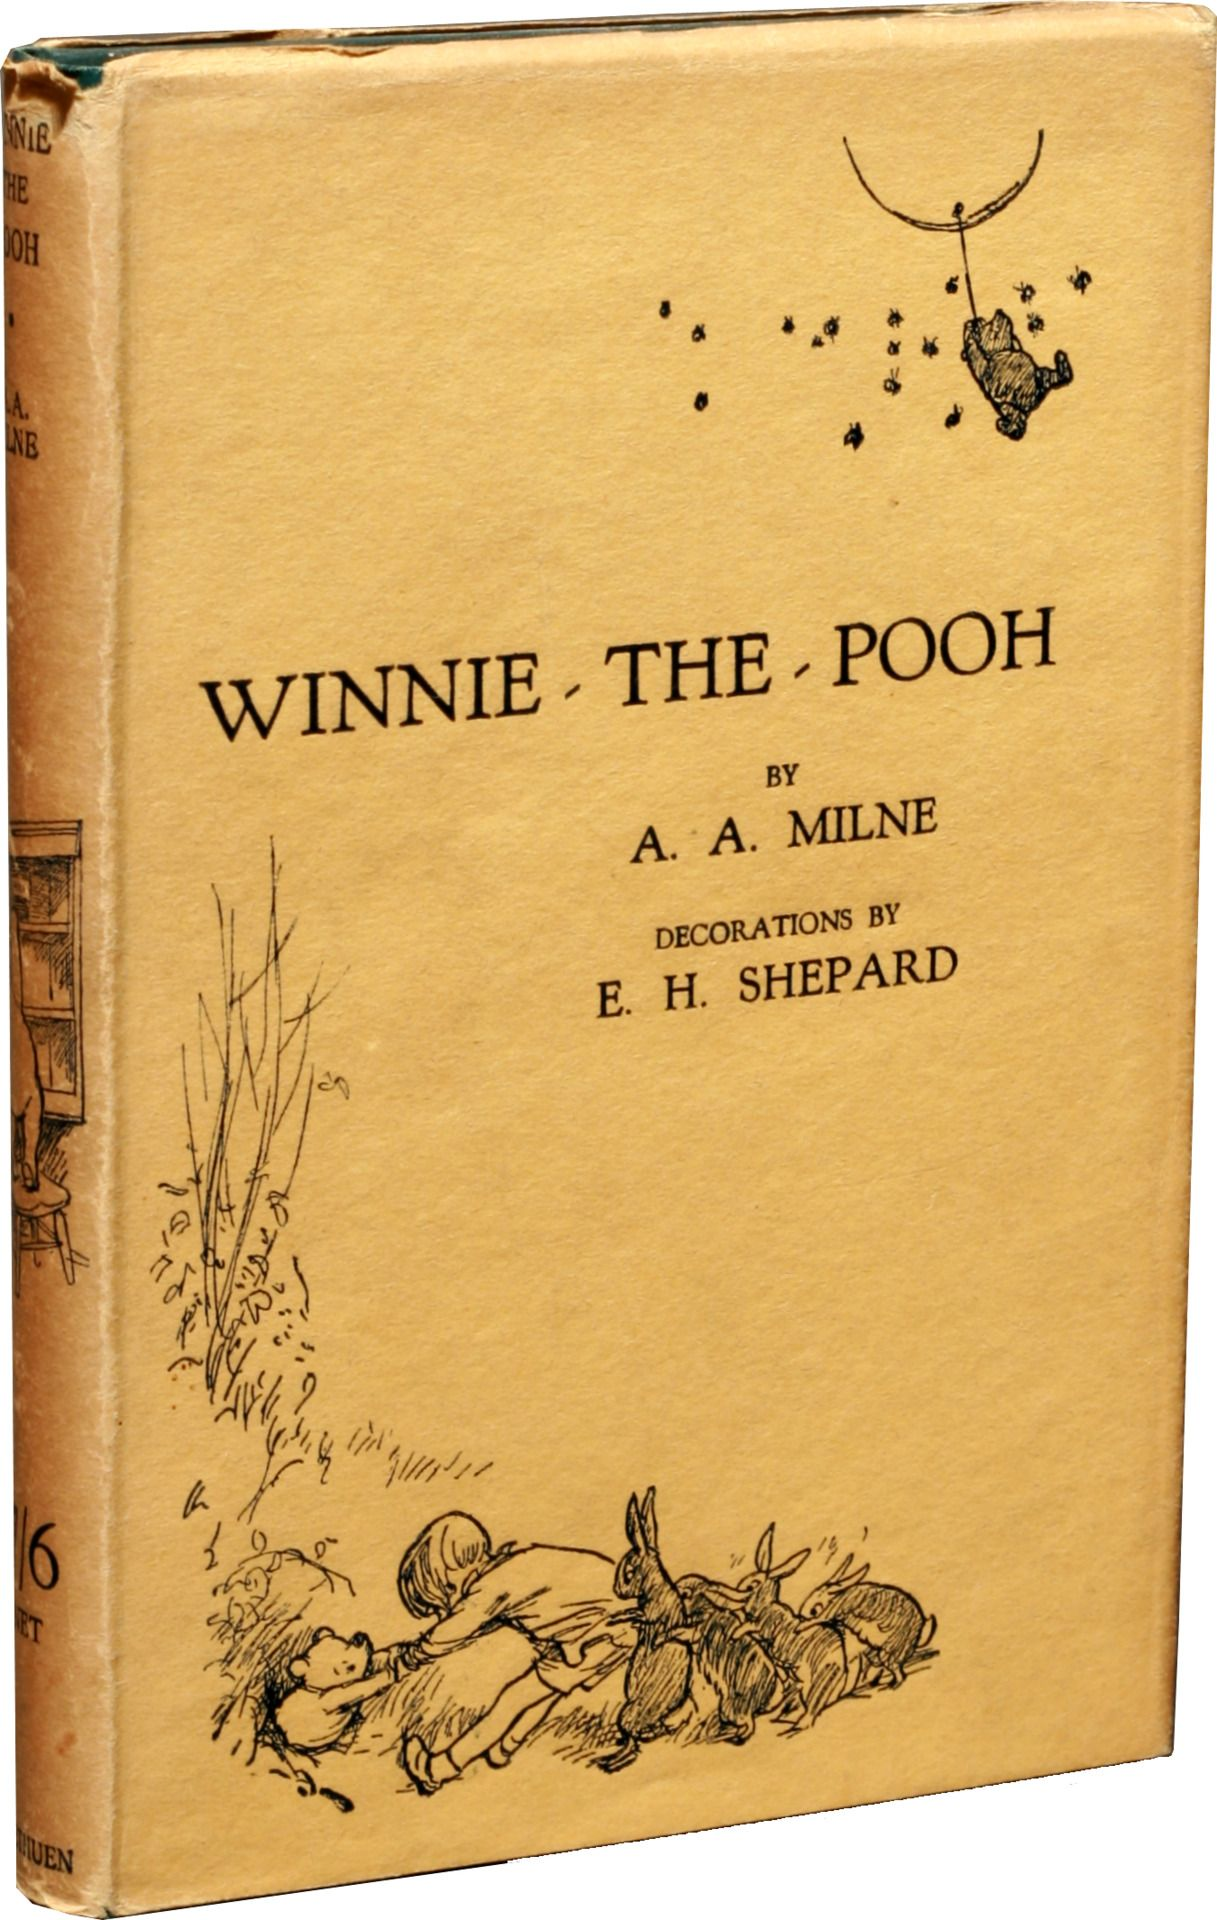 October 14 – A. A. Milne's children's book Winnie-the-Pooh is published in London, featuring the eponymous bear.